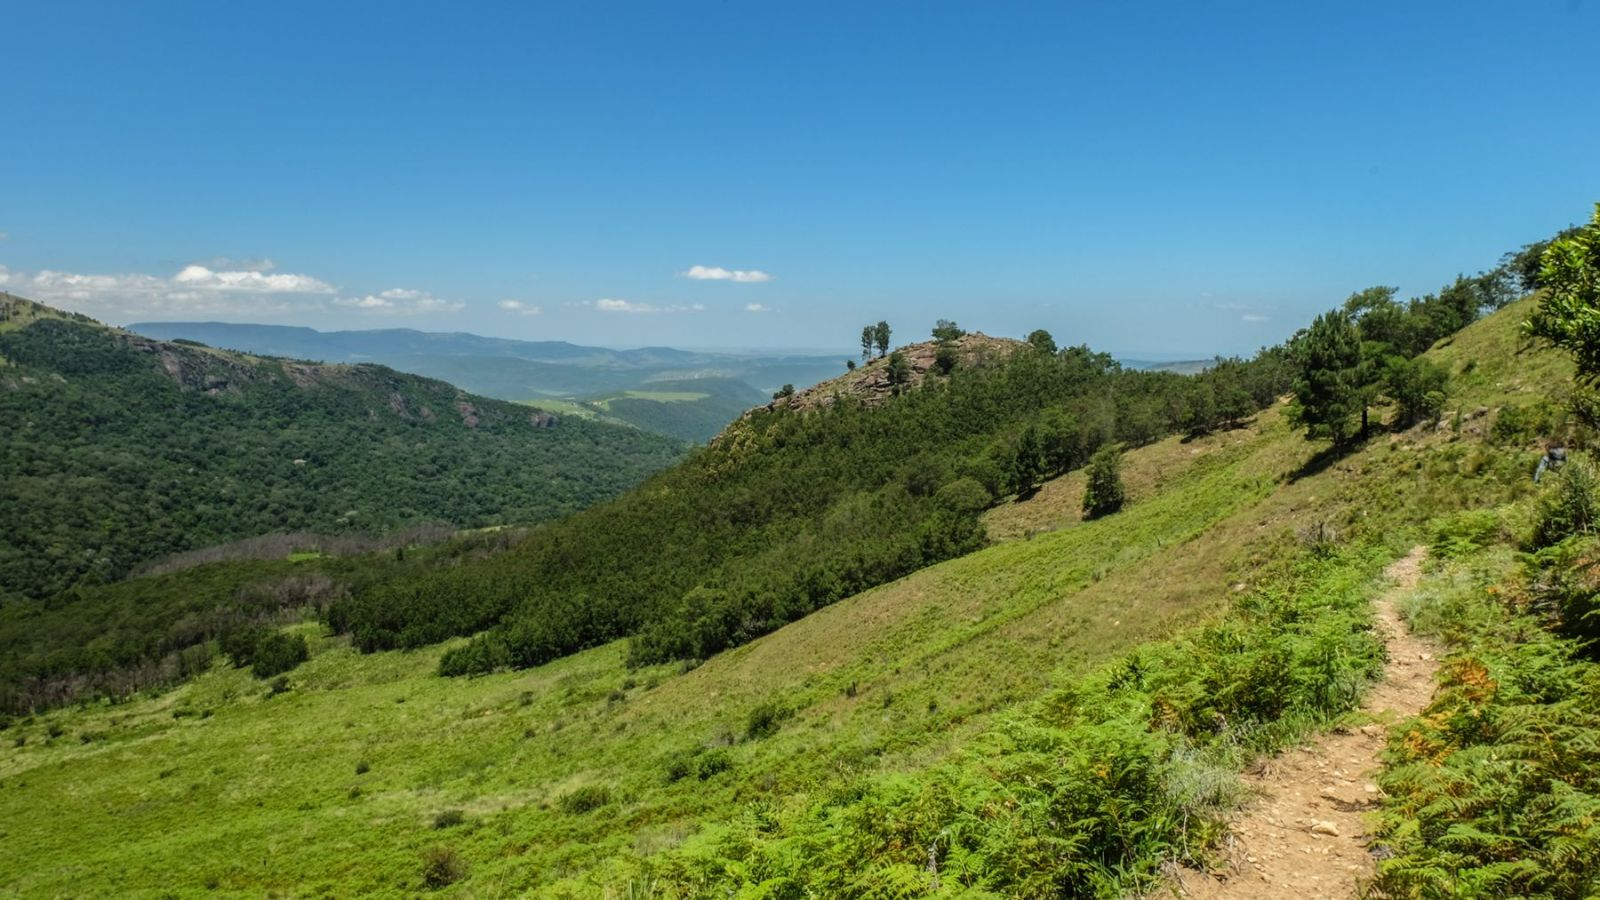 a photo of a valley from the top of a hill along the amathole trail.